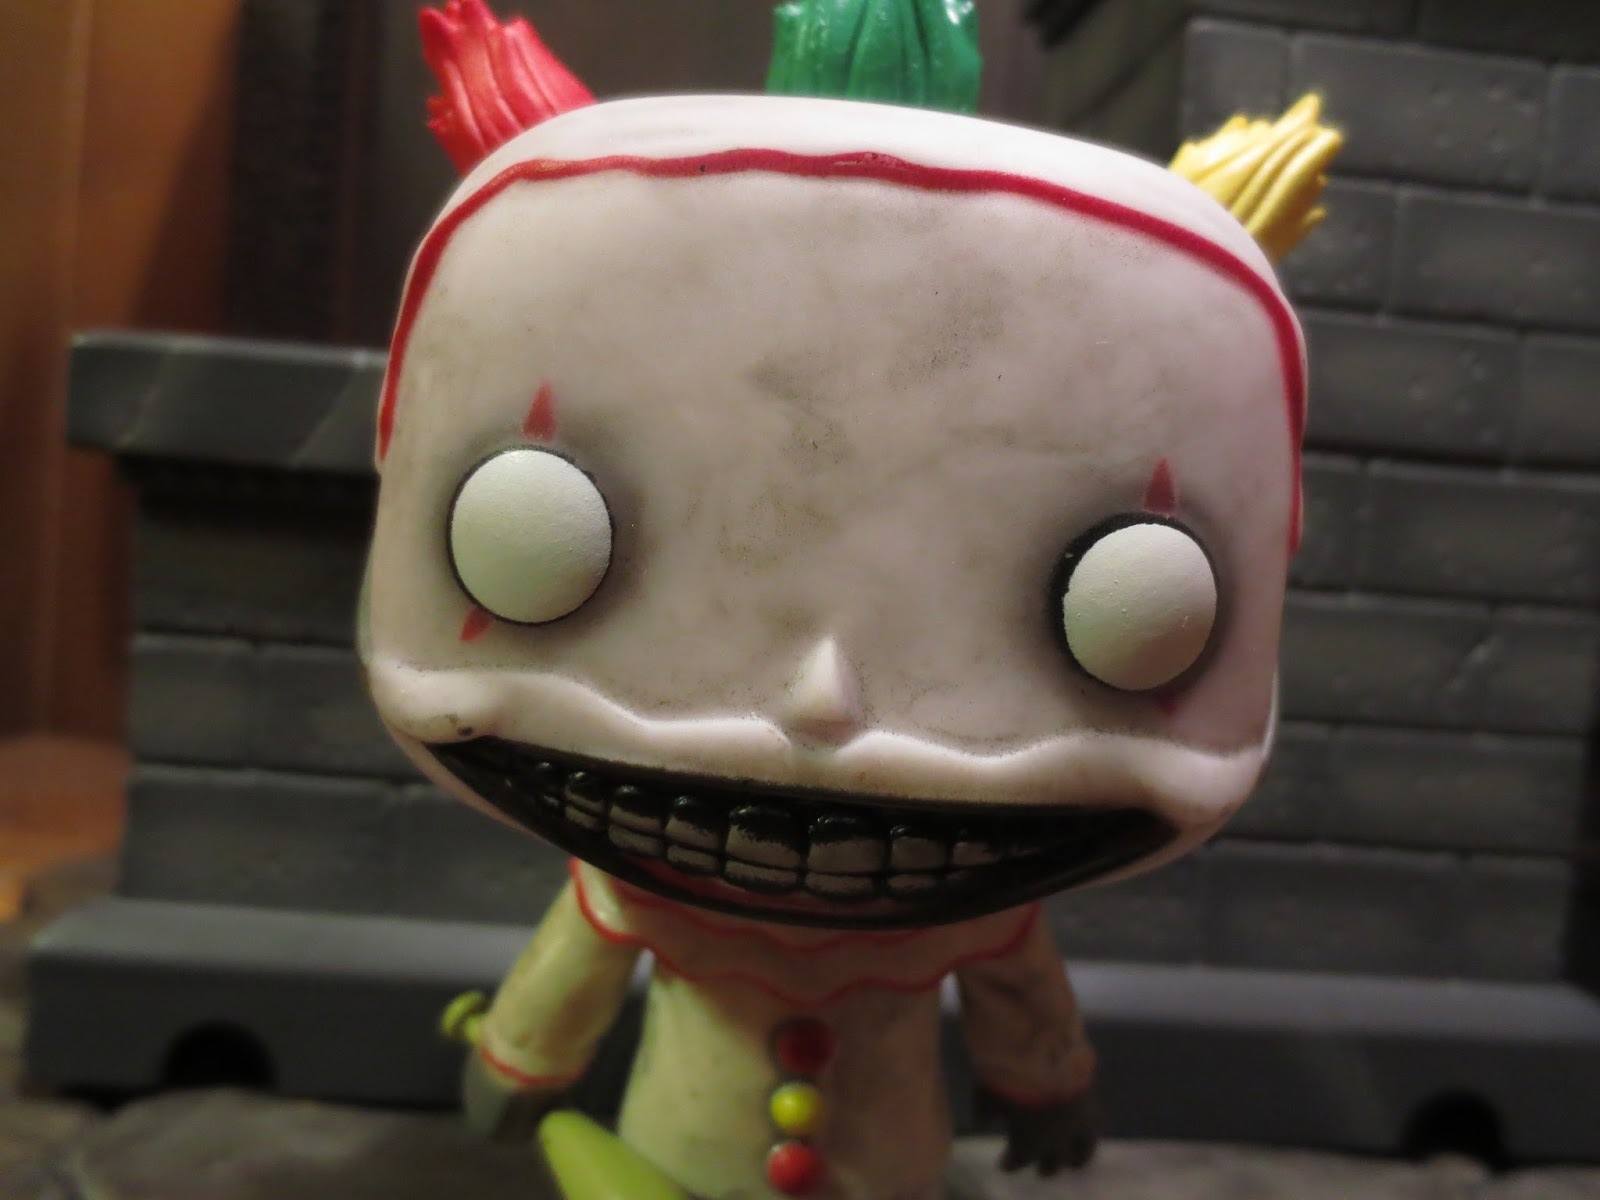 31 Days of Toy Terror Lives: Twisty from American Horror Story: Freak Show from Pop! Television by Funko